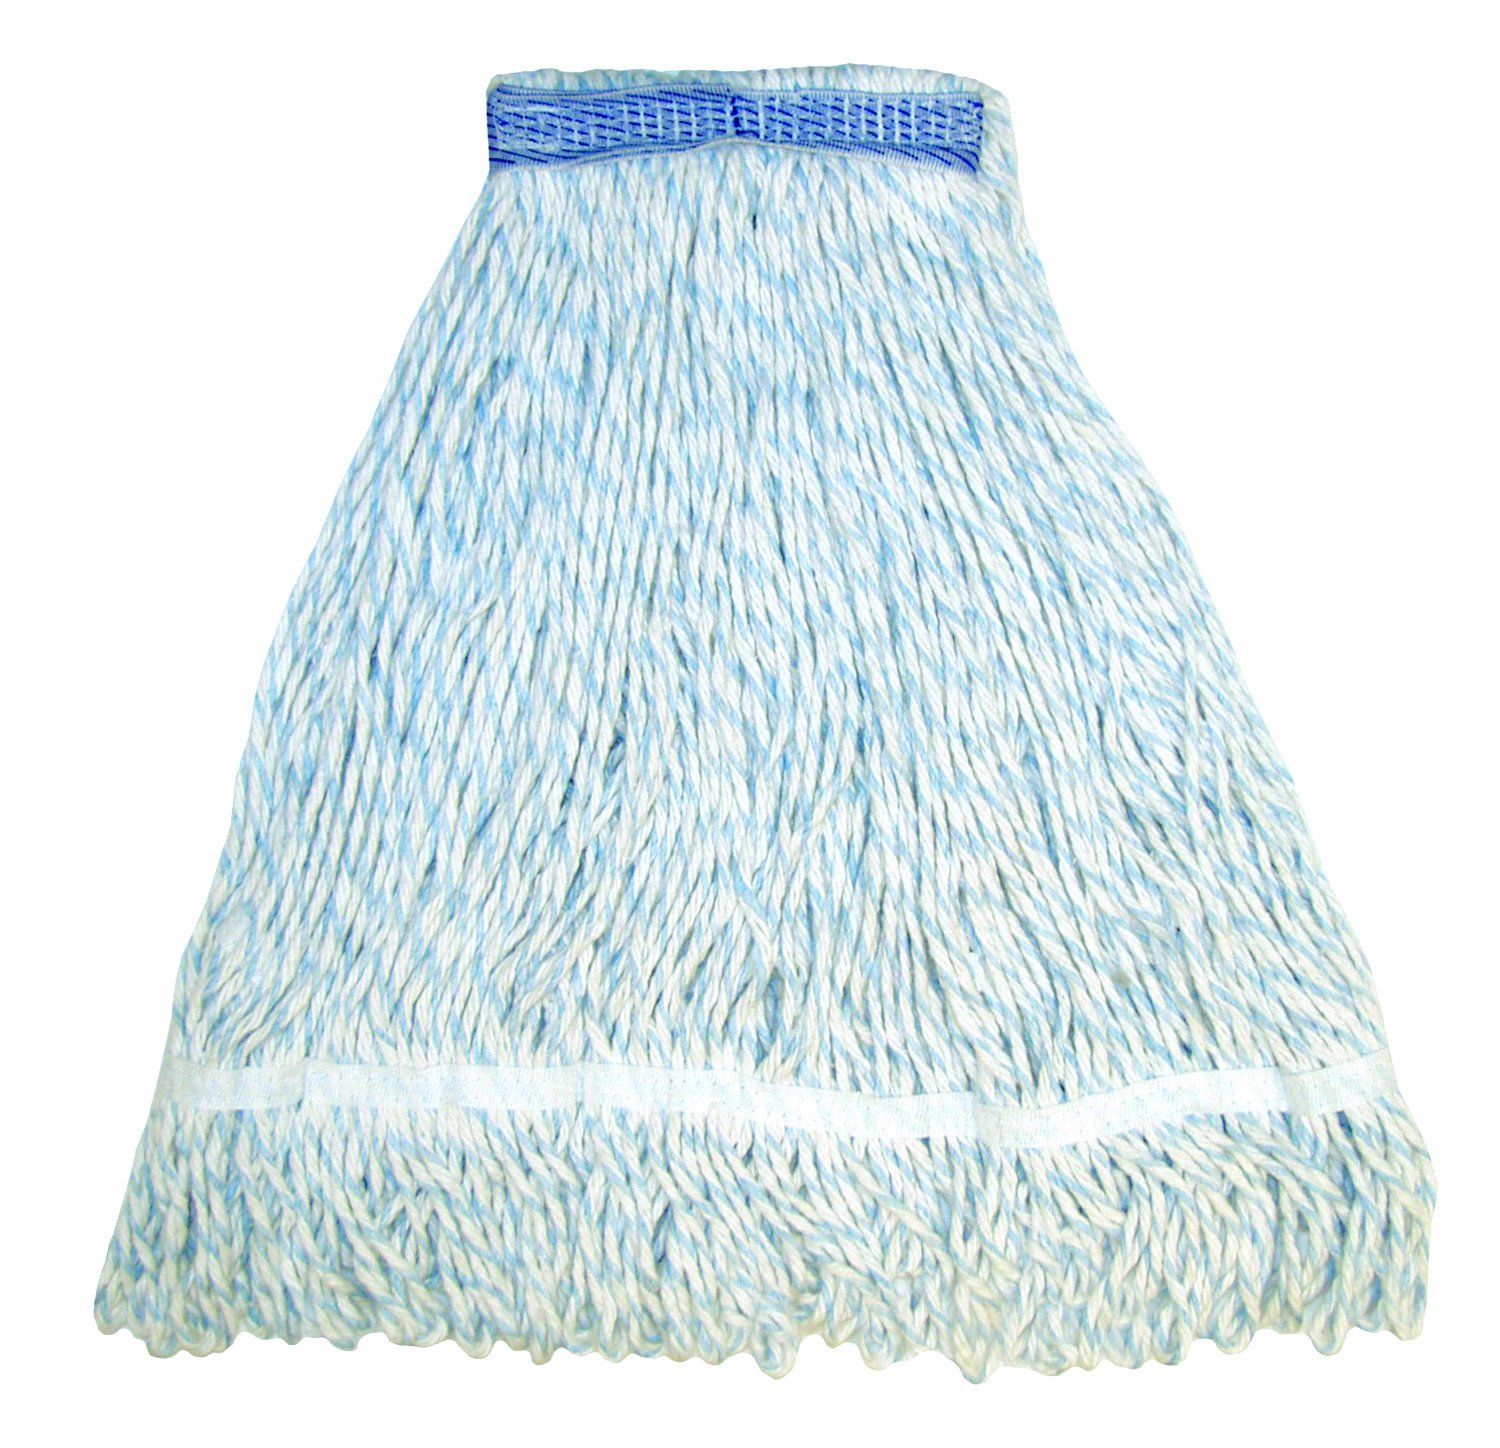 Case of 12 E-Line Finish Looped End Wet Mop 5 Mesh Band Blue//White Wilen A11402 Medium